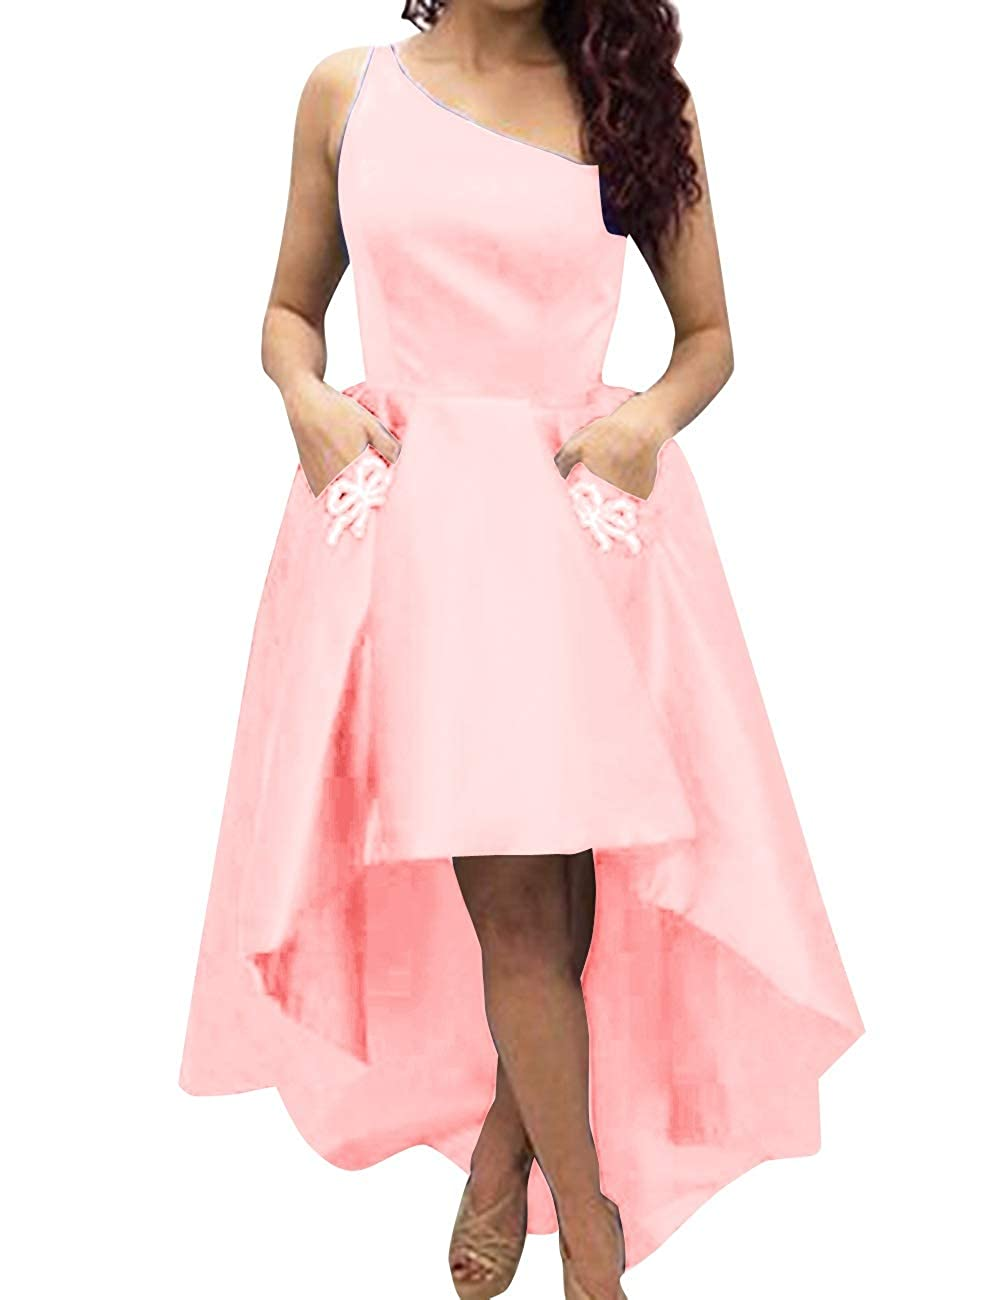 bluesh Pink MorySong Women's One Shoulder High Low Sain Prom Cocktail Dress with Pockets